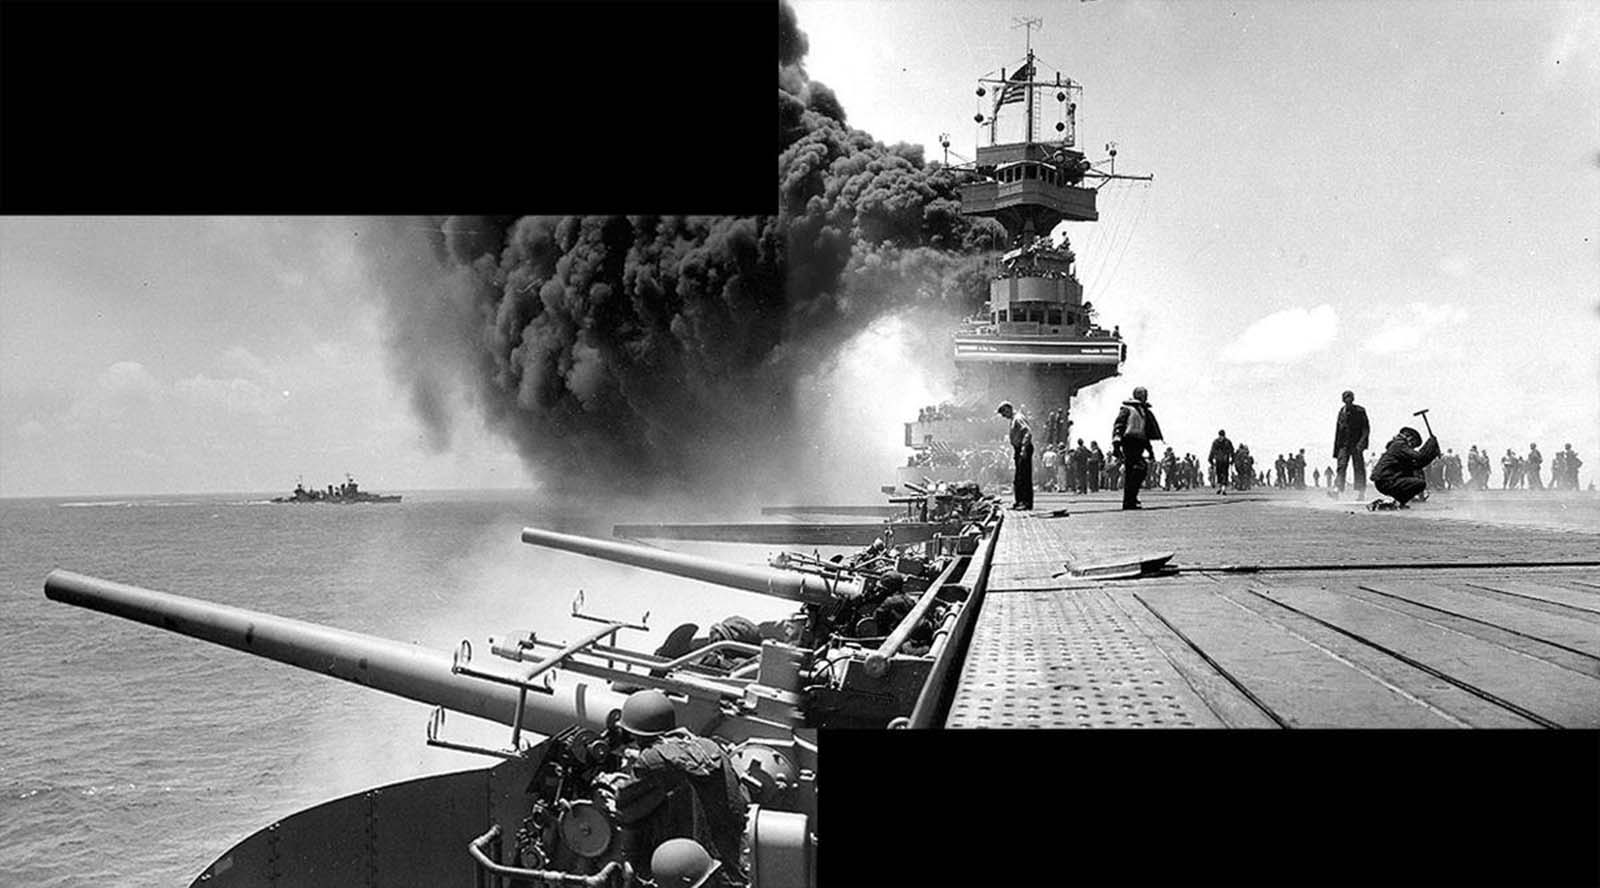 Scene on board USS Yorktown, shortly after she was hit by three Japanese bombs on June 4, 1942. The dense smoke is from fires in her uptakes, caused by a bomb that punctured them and knocked out her boilers. Panorama made from two photographs taken by Photographer 2rd Class William G. Roy from the starboard side of the flight deck, just in front of the forward 5